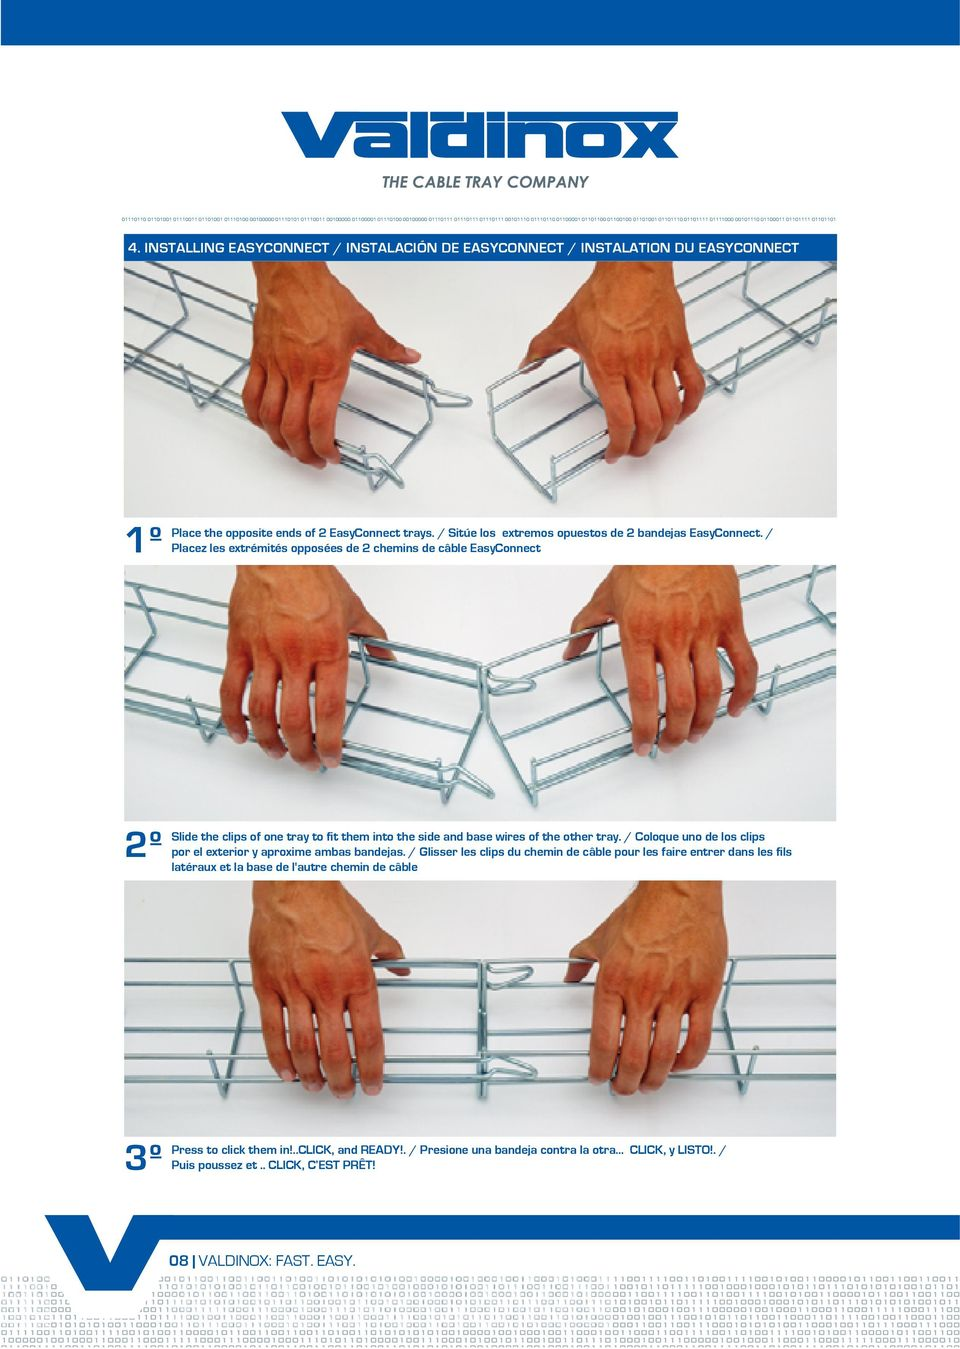 / Placez les extrémités opposées de 2 chemins de câble EasyConnect 2º Slide the clips of one tray to fit them into the side and base wires of the other tray.